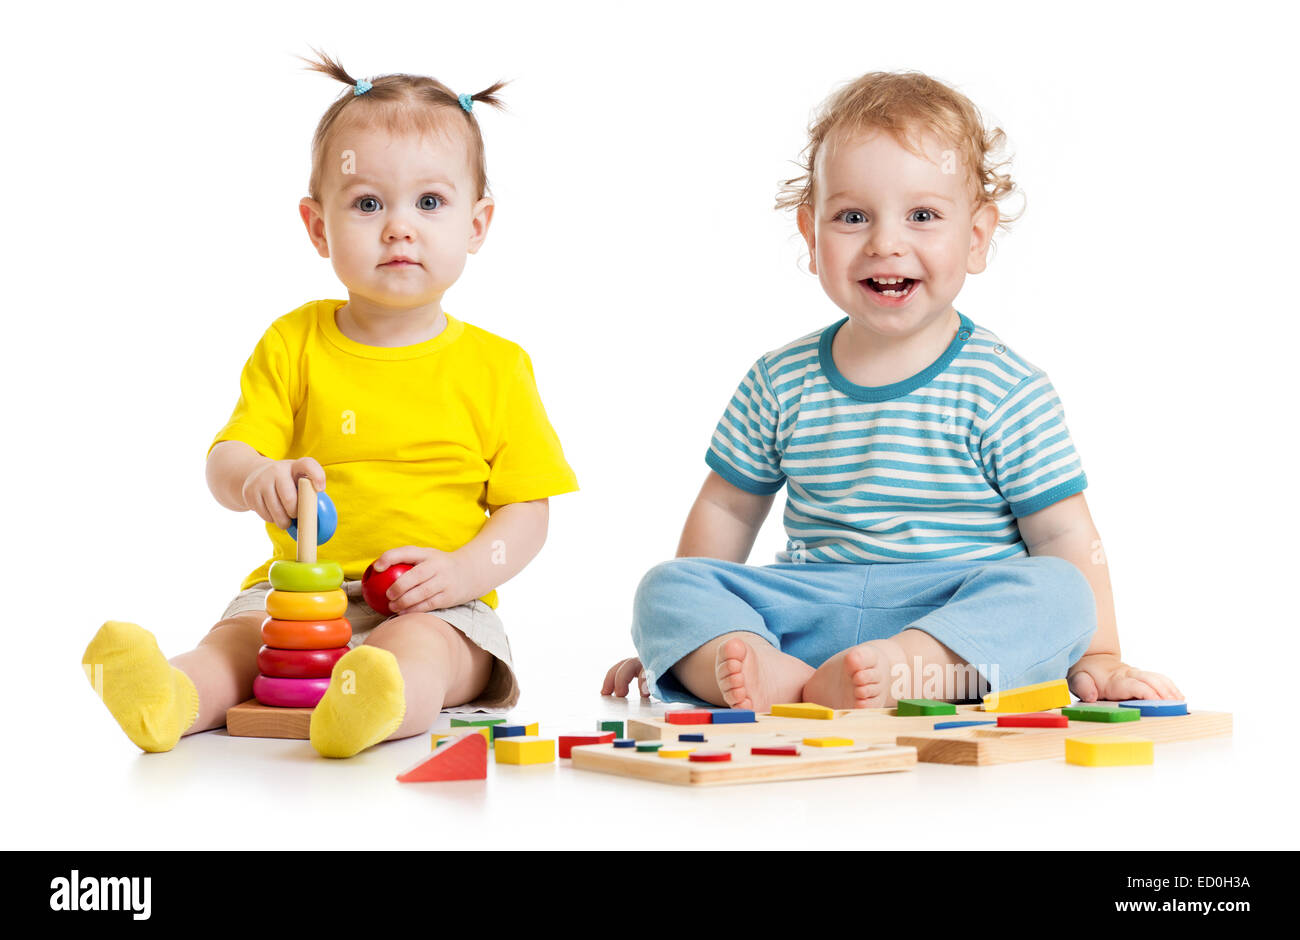 Funny kids playing educational toys isolated - Stock Image